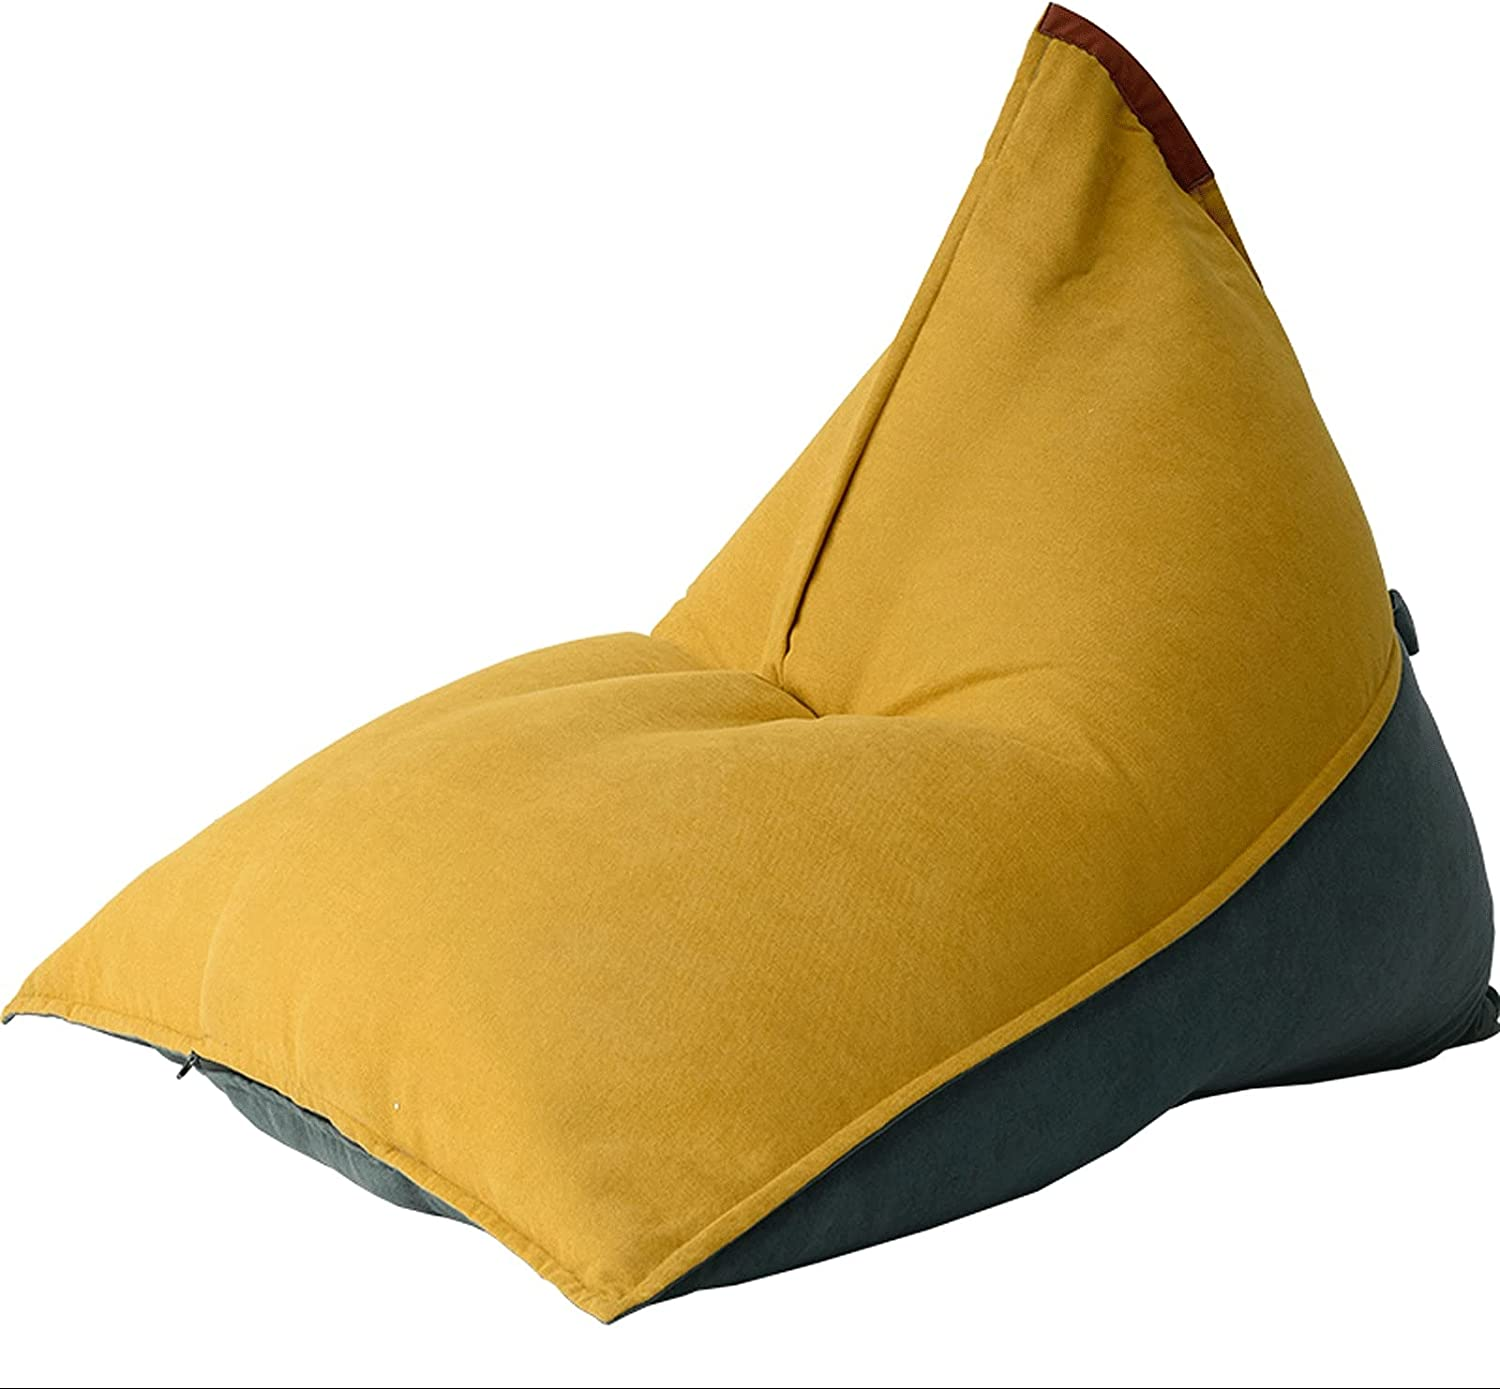 JNOI Sale SALE% OFF Bean Bag Chair Lounger Handle Design Easy Fo Giant discount Move to